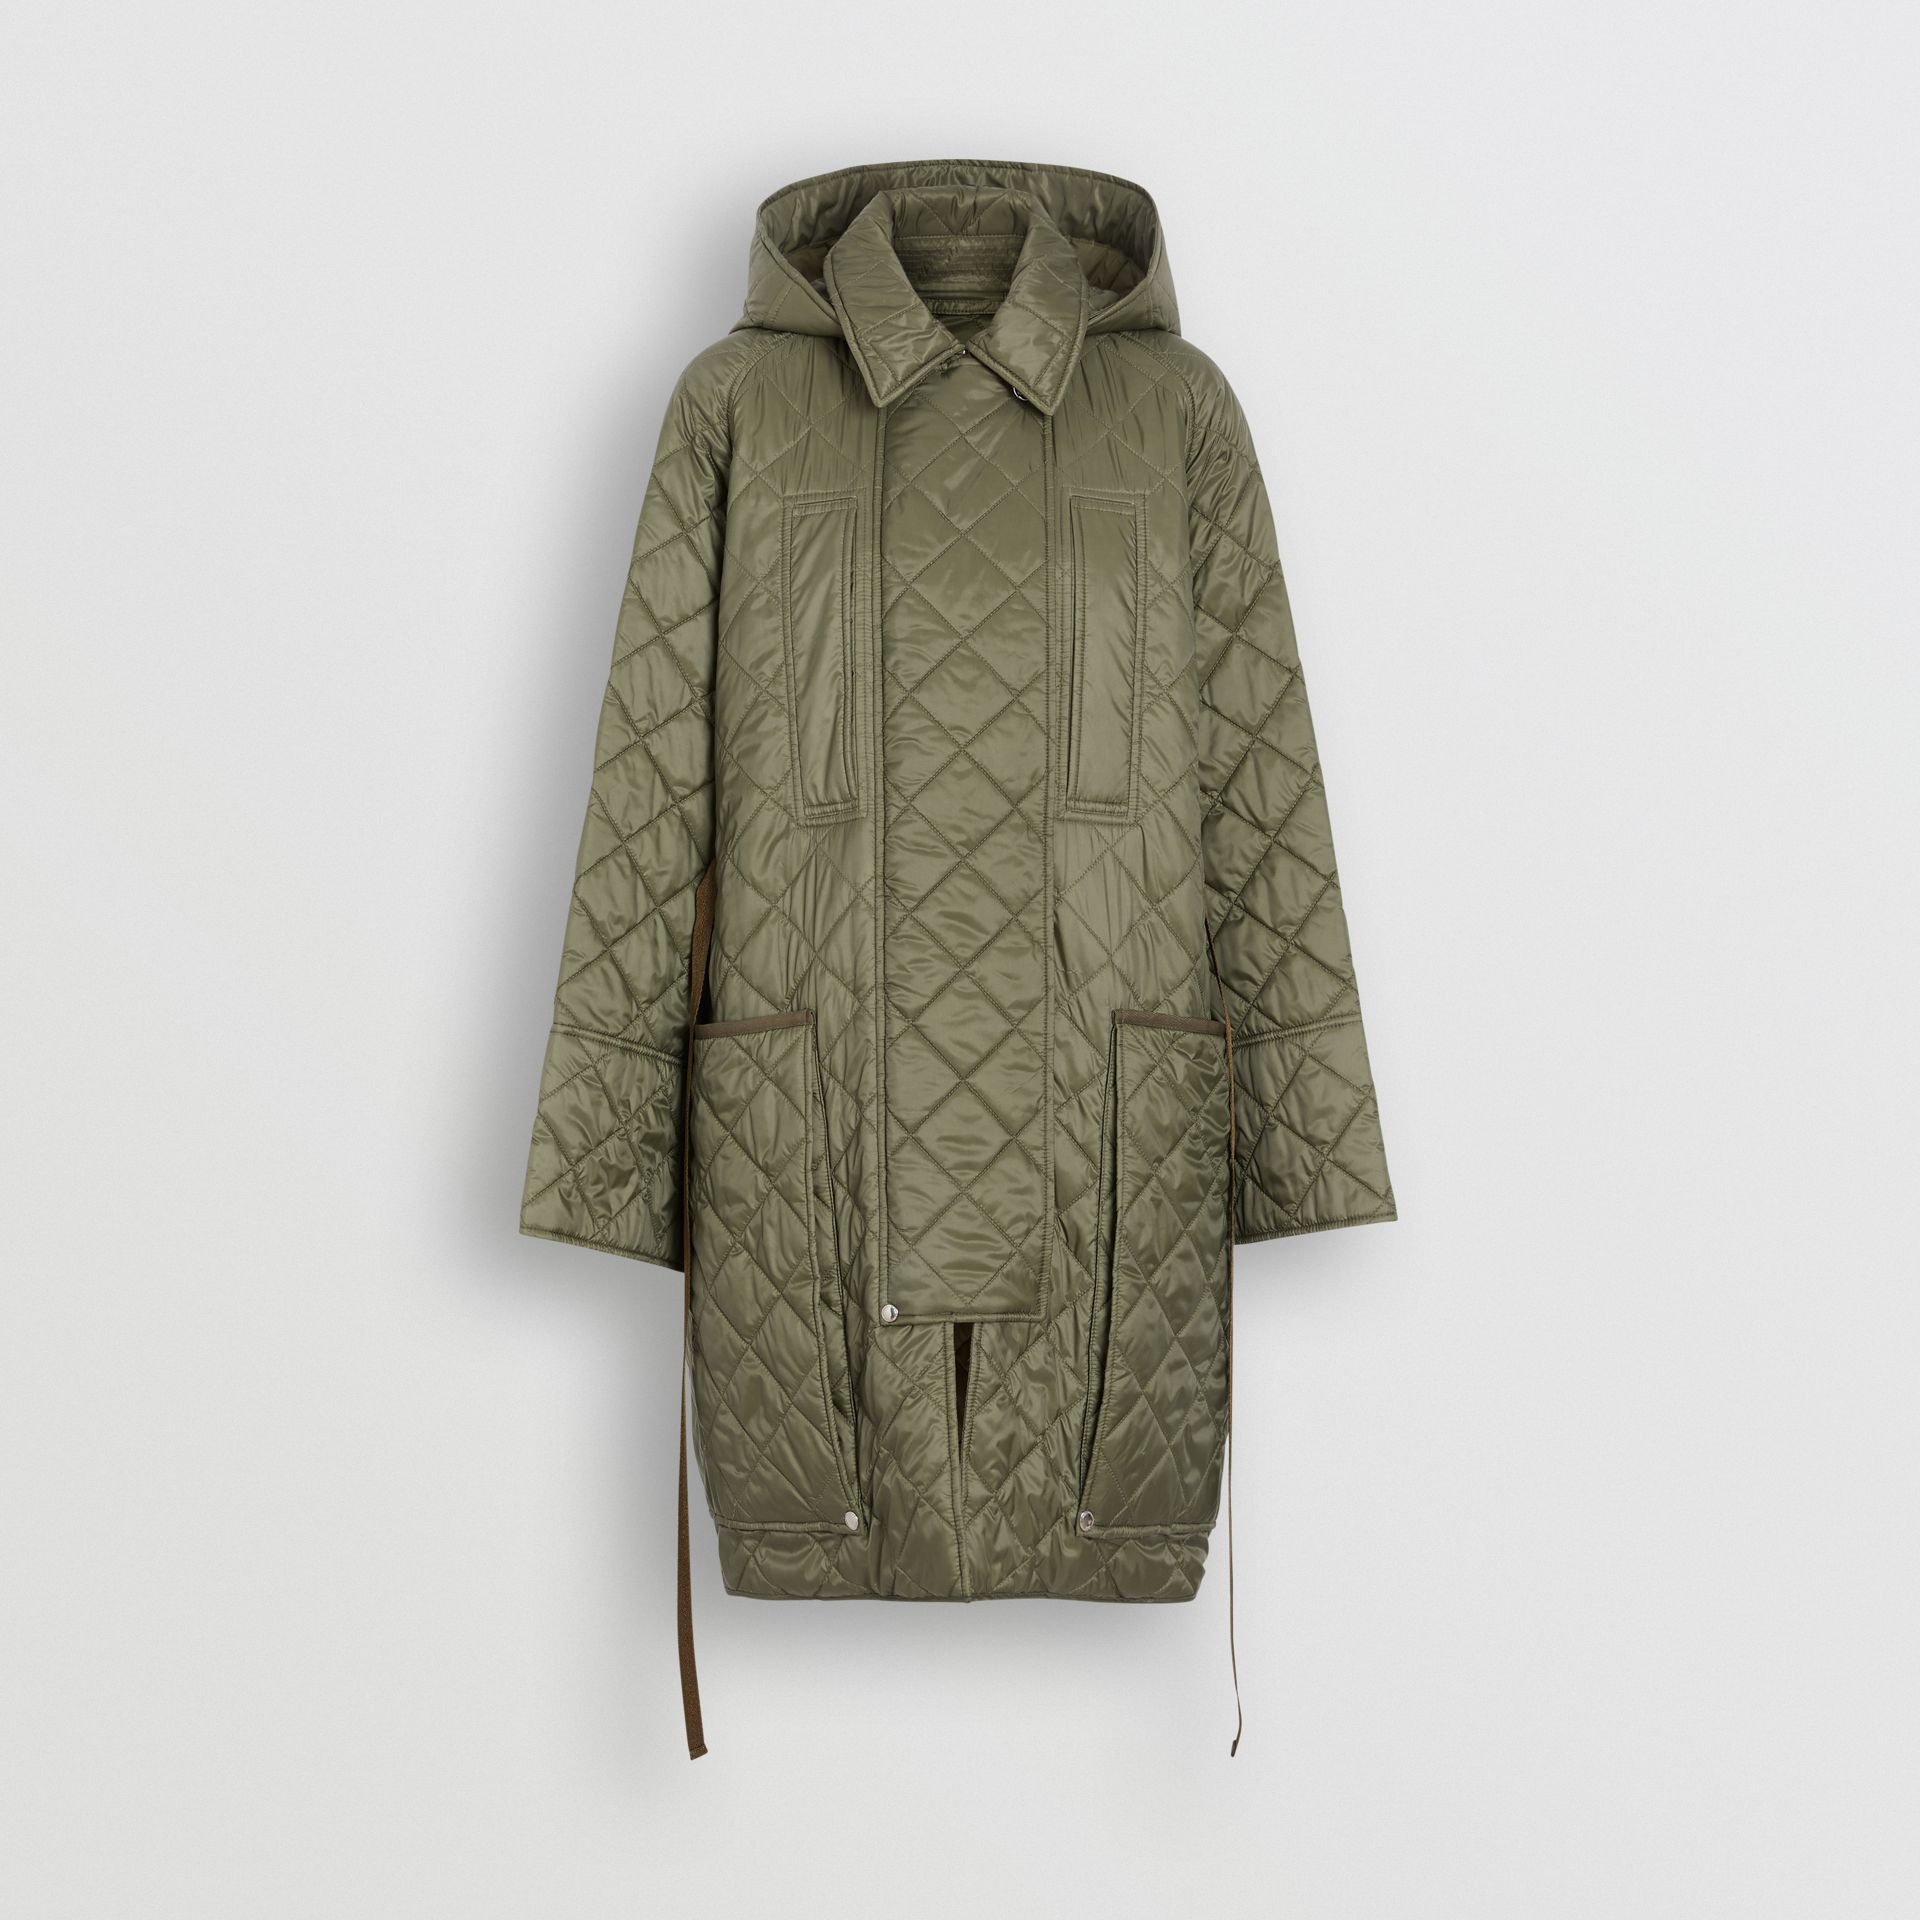 Lightweight Diamond Quilted Hooded Coat in Cadet Green - Women | Burberry Canada - gallery image 2